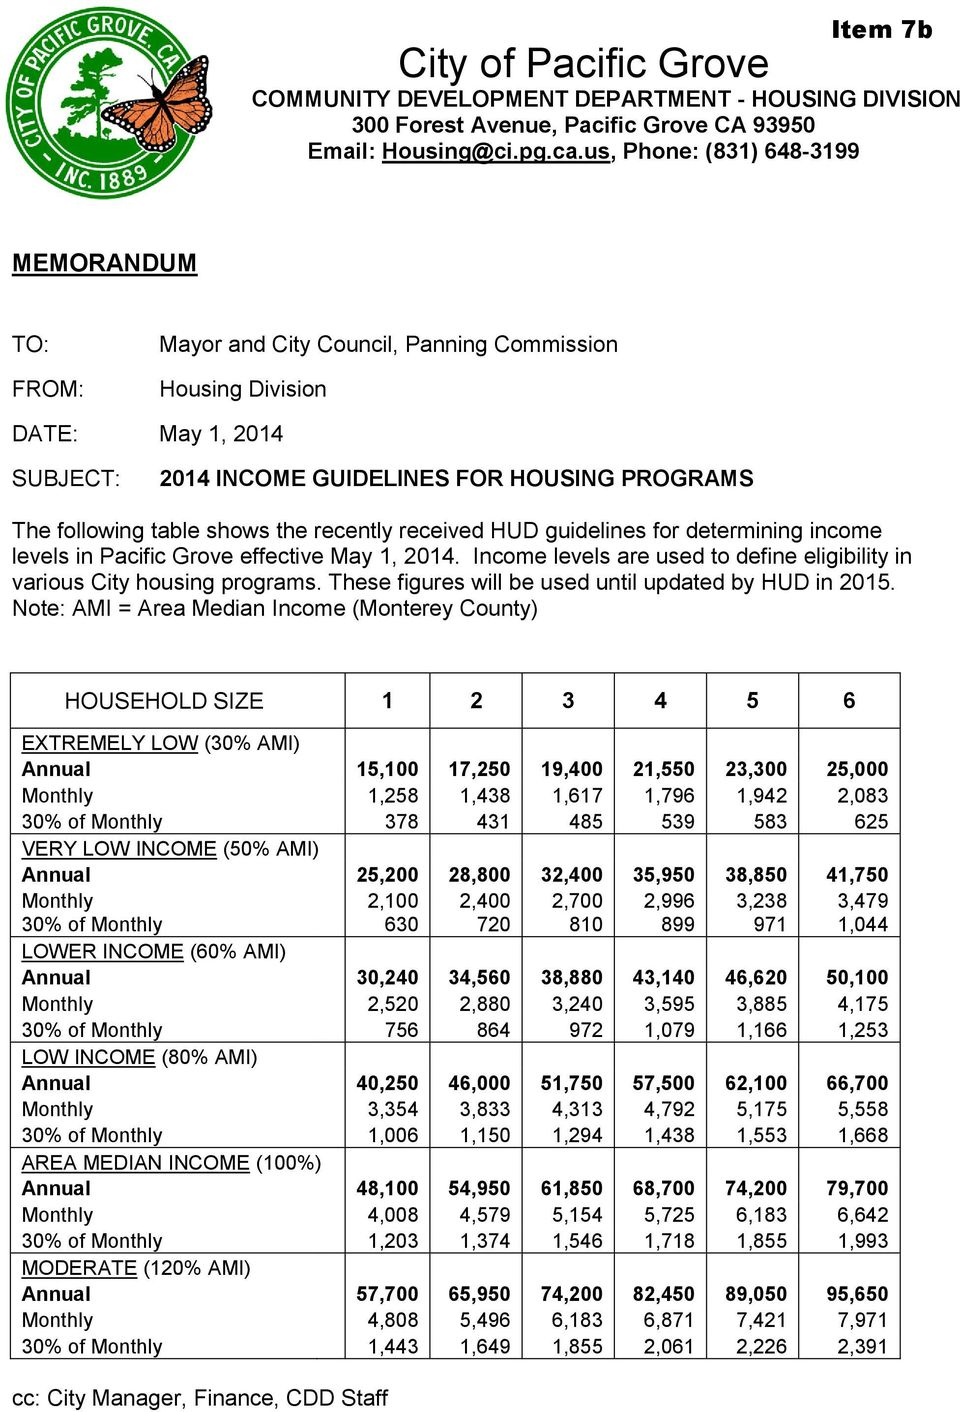 shows the recently received HUD guidelines for determining income levels in Pacific Grove effective May 1, 2014. Income levels are used to define eligibility in various City housing programs.